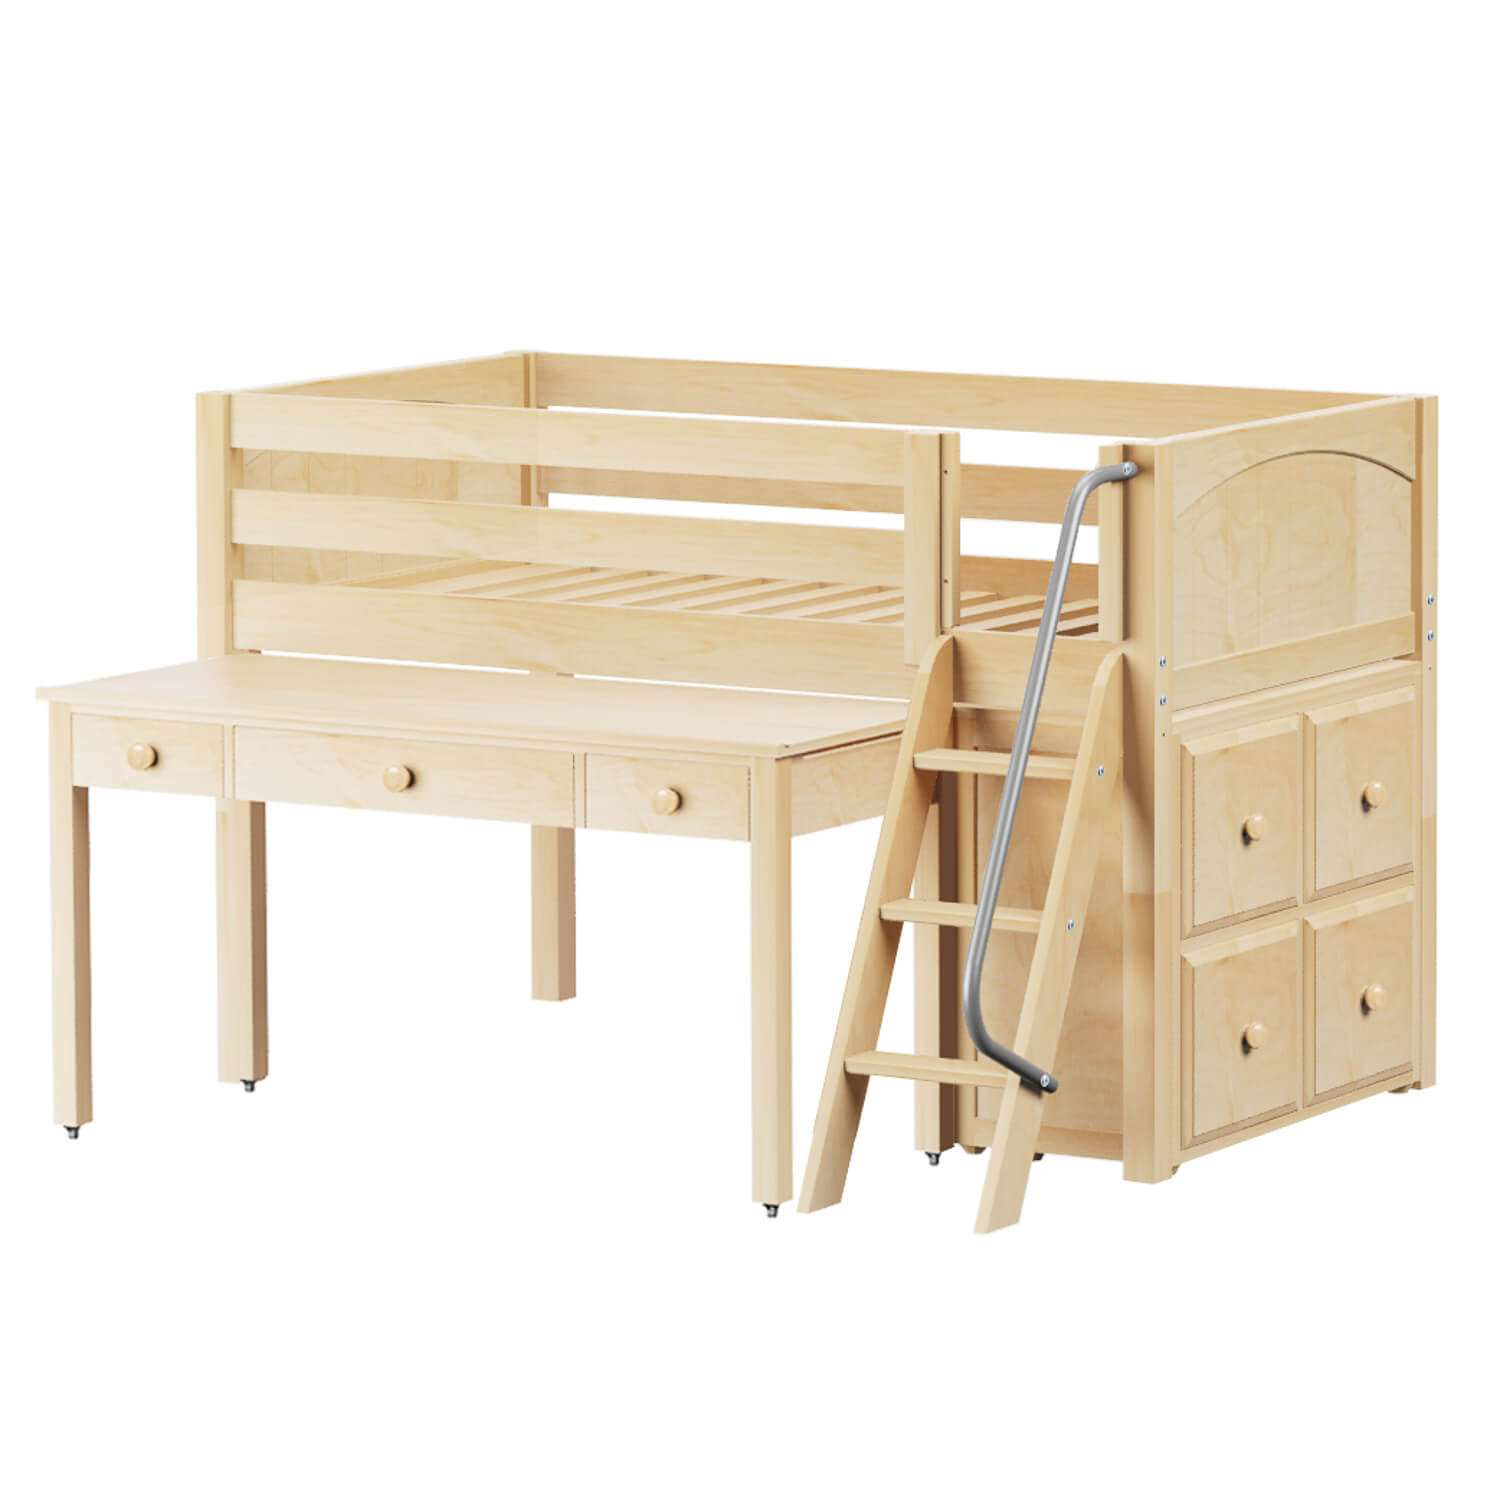 Childrens loft beds CUB KICKS10 NP XAM